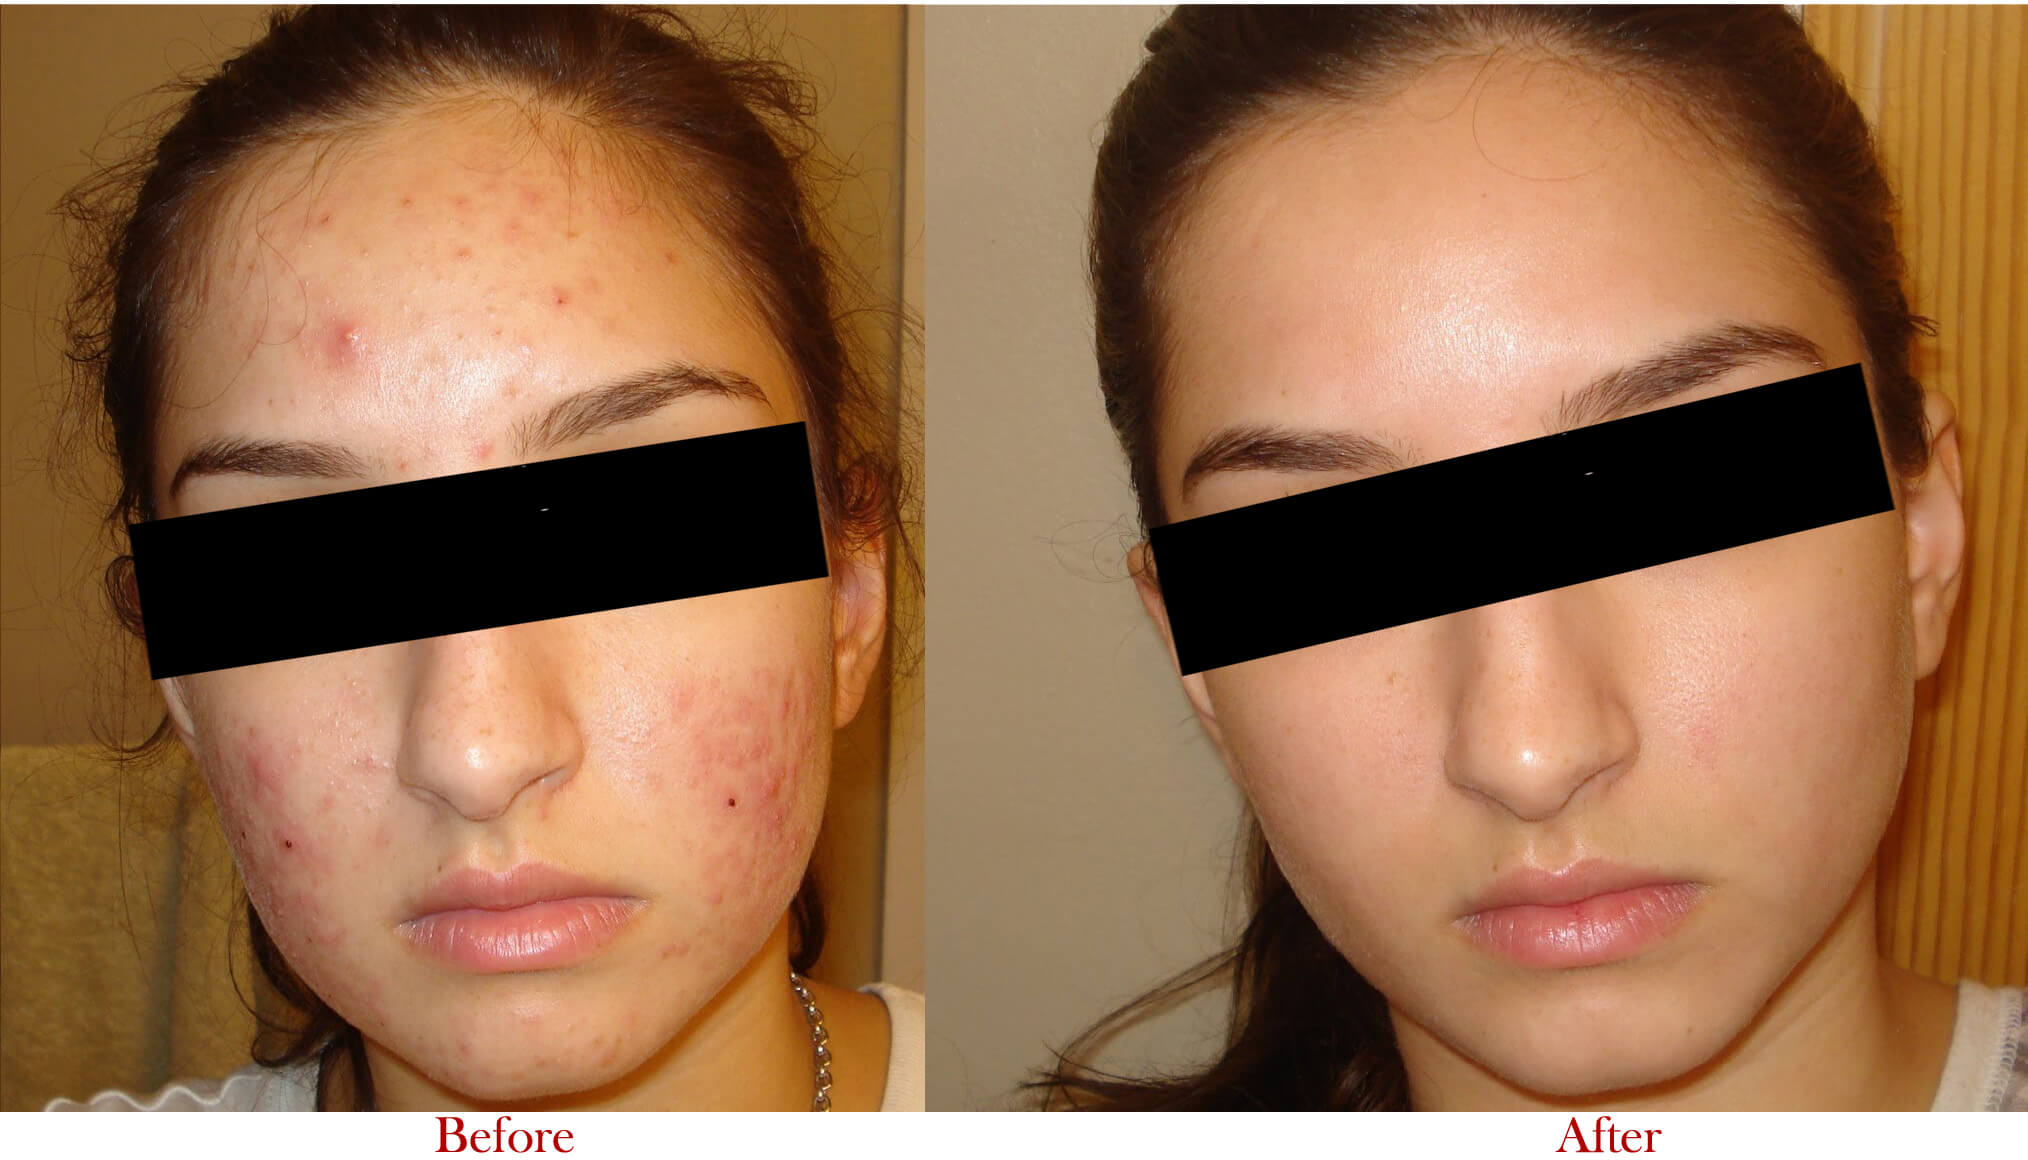 Scars Treatment in Delhi